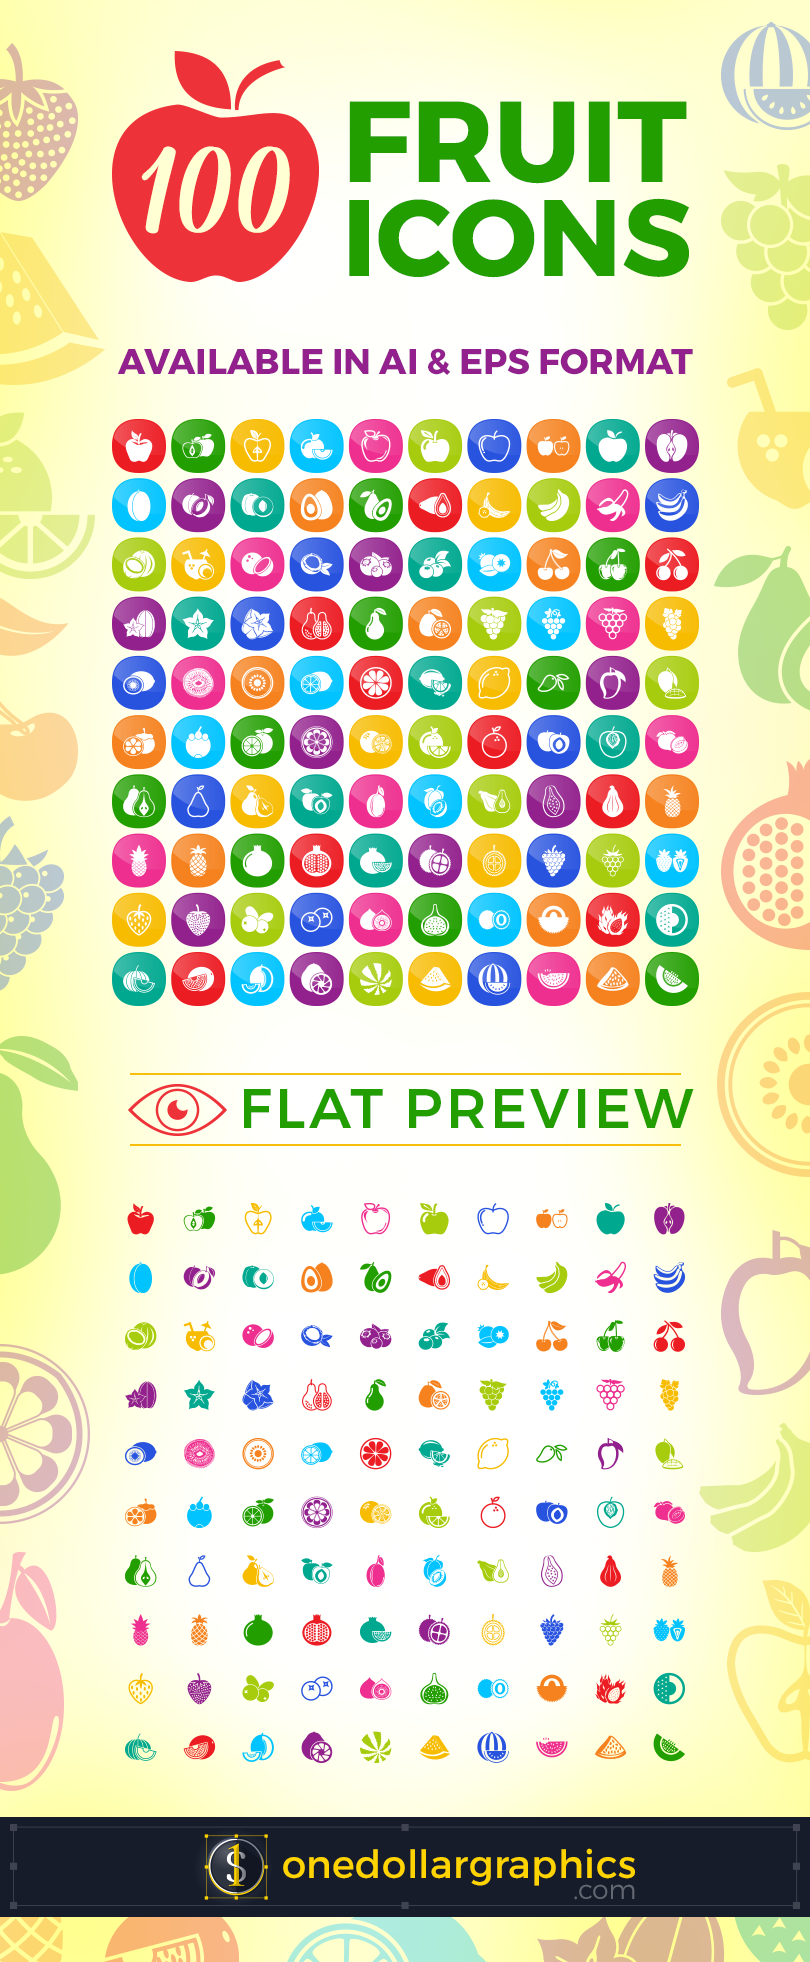 100-flat-fruit-icons-in-ai-eps-format-2